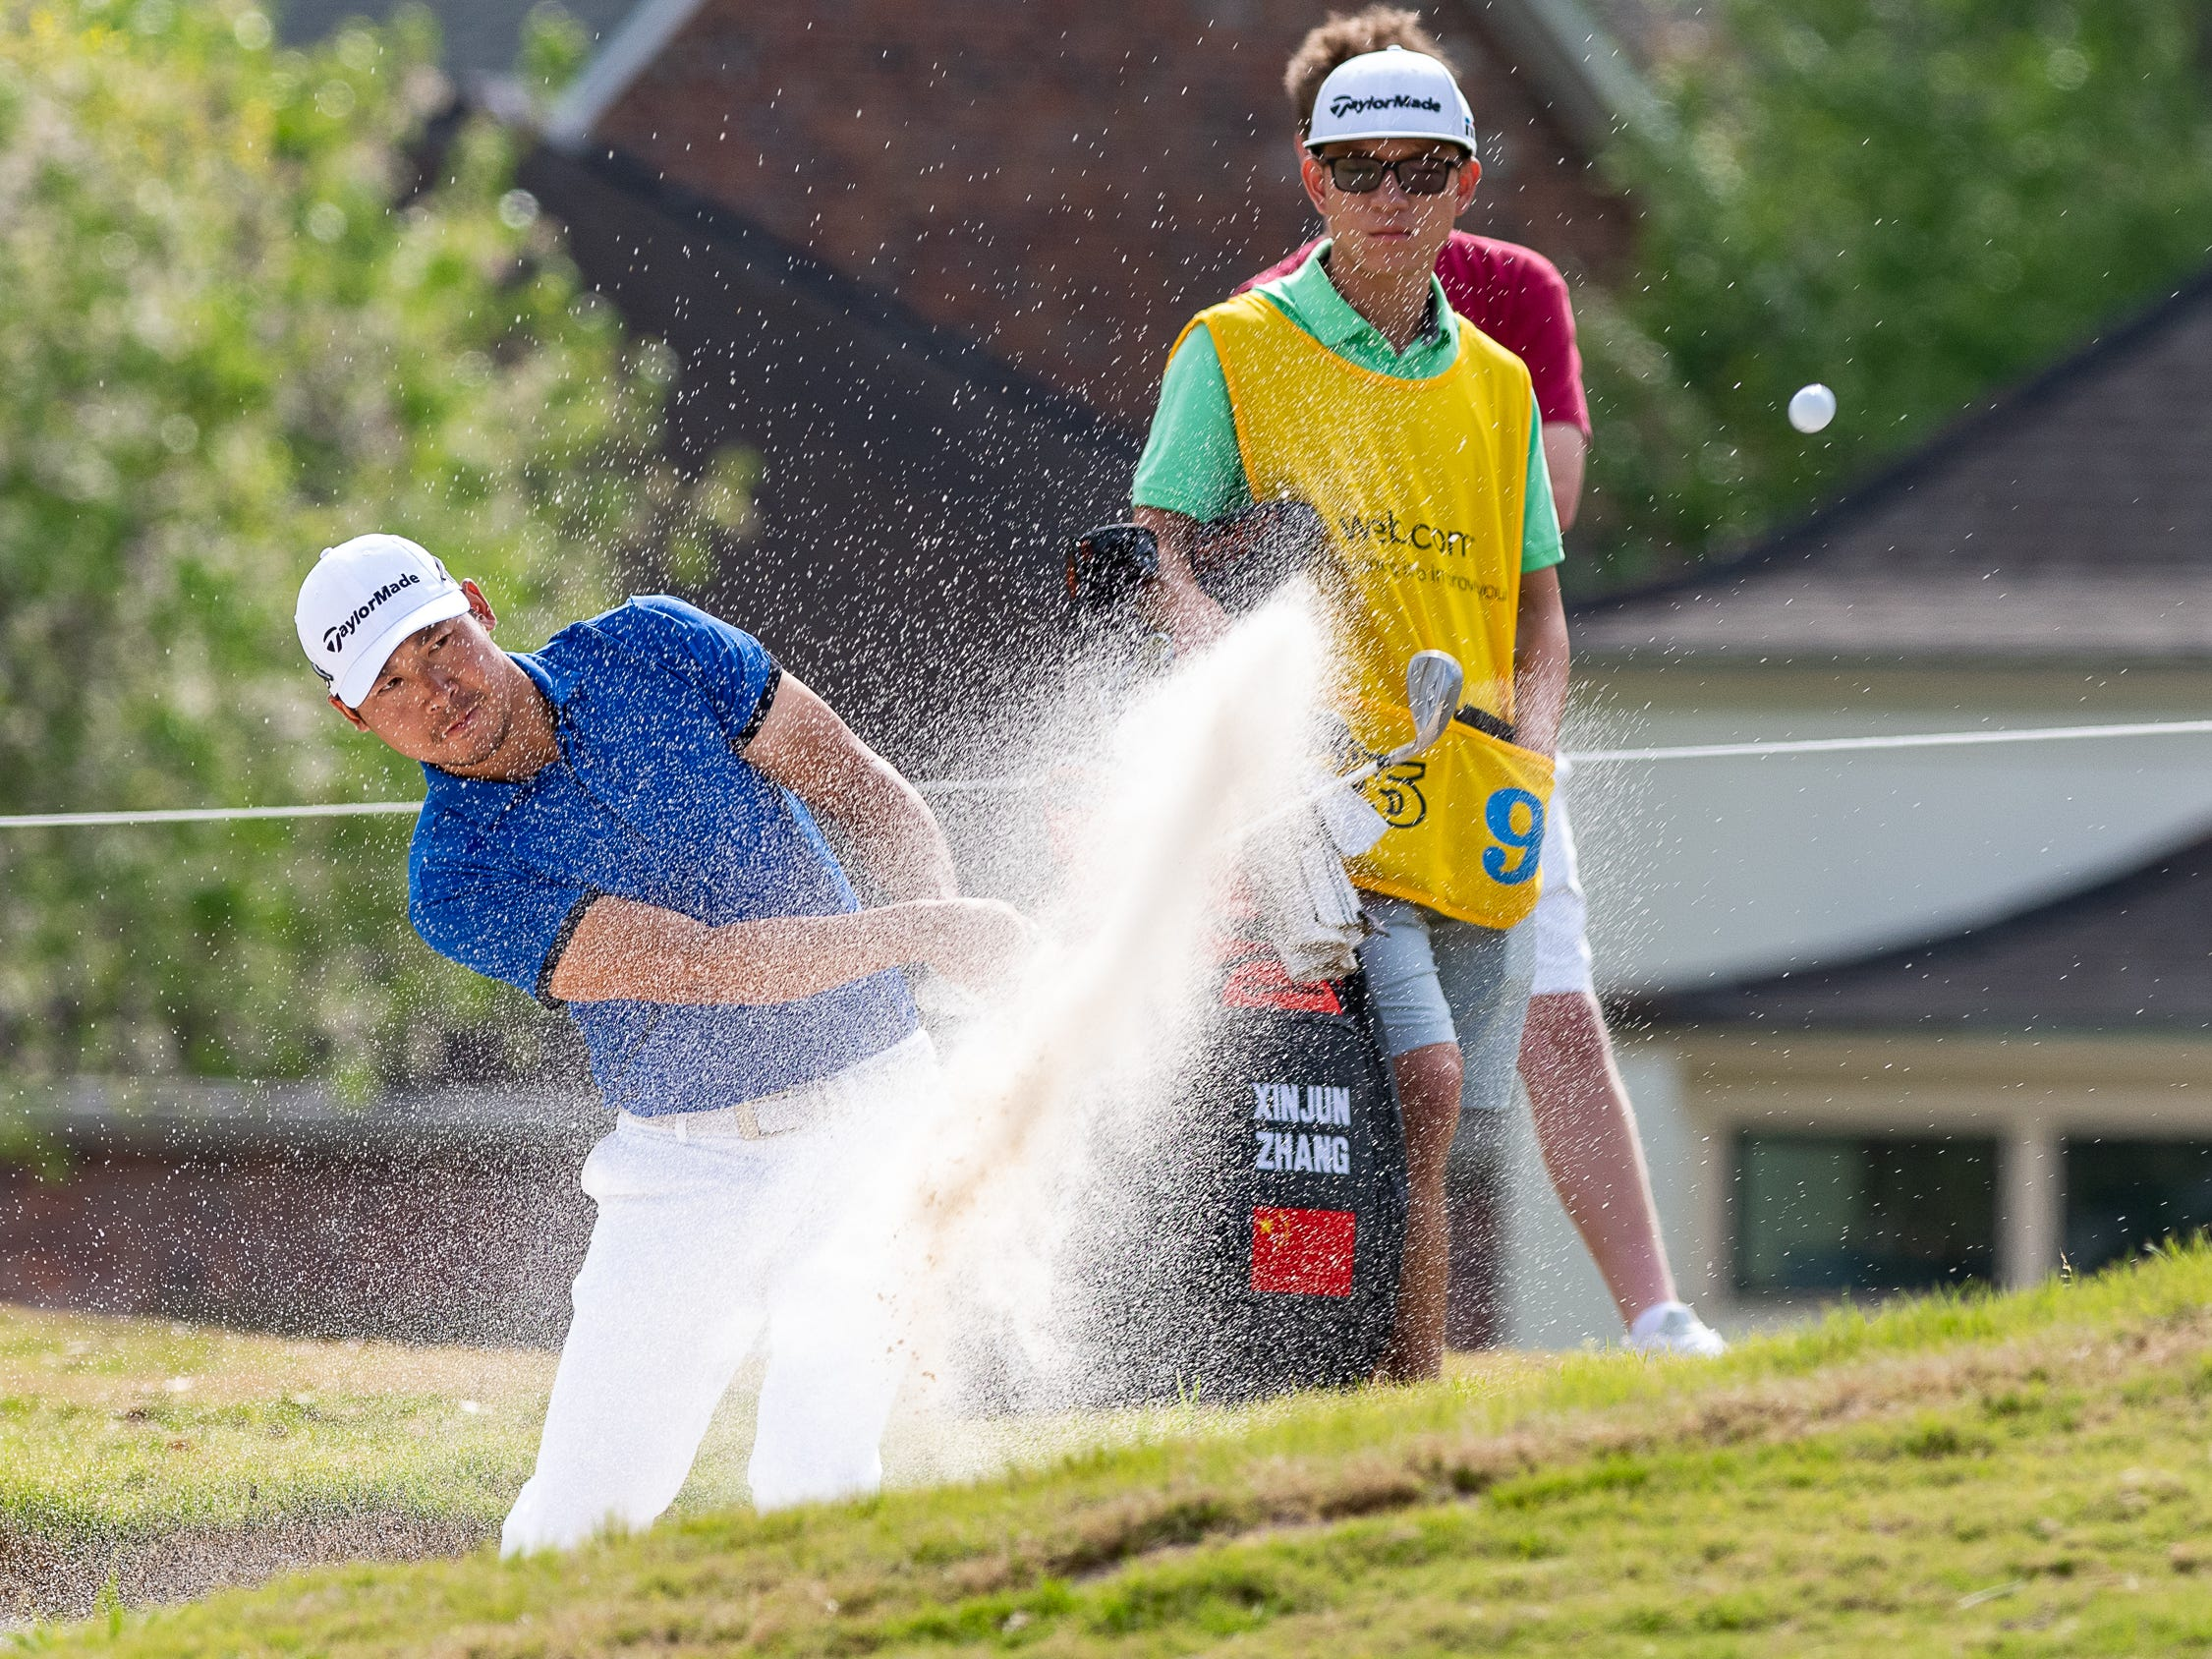 Xinjun Zhang from the sand during the final round of the Web.com 2019 Chitimacha Louisiana Open presented by Mistras at Le Triomphe. Sunday, March 24, 2019.